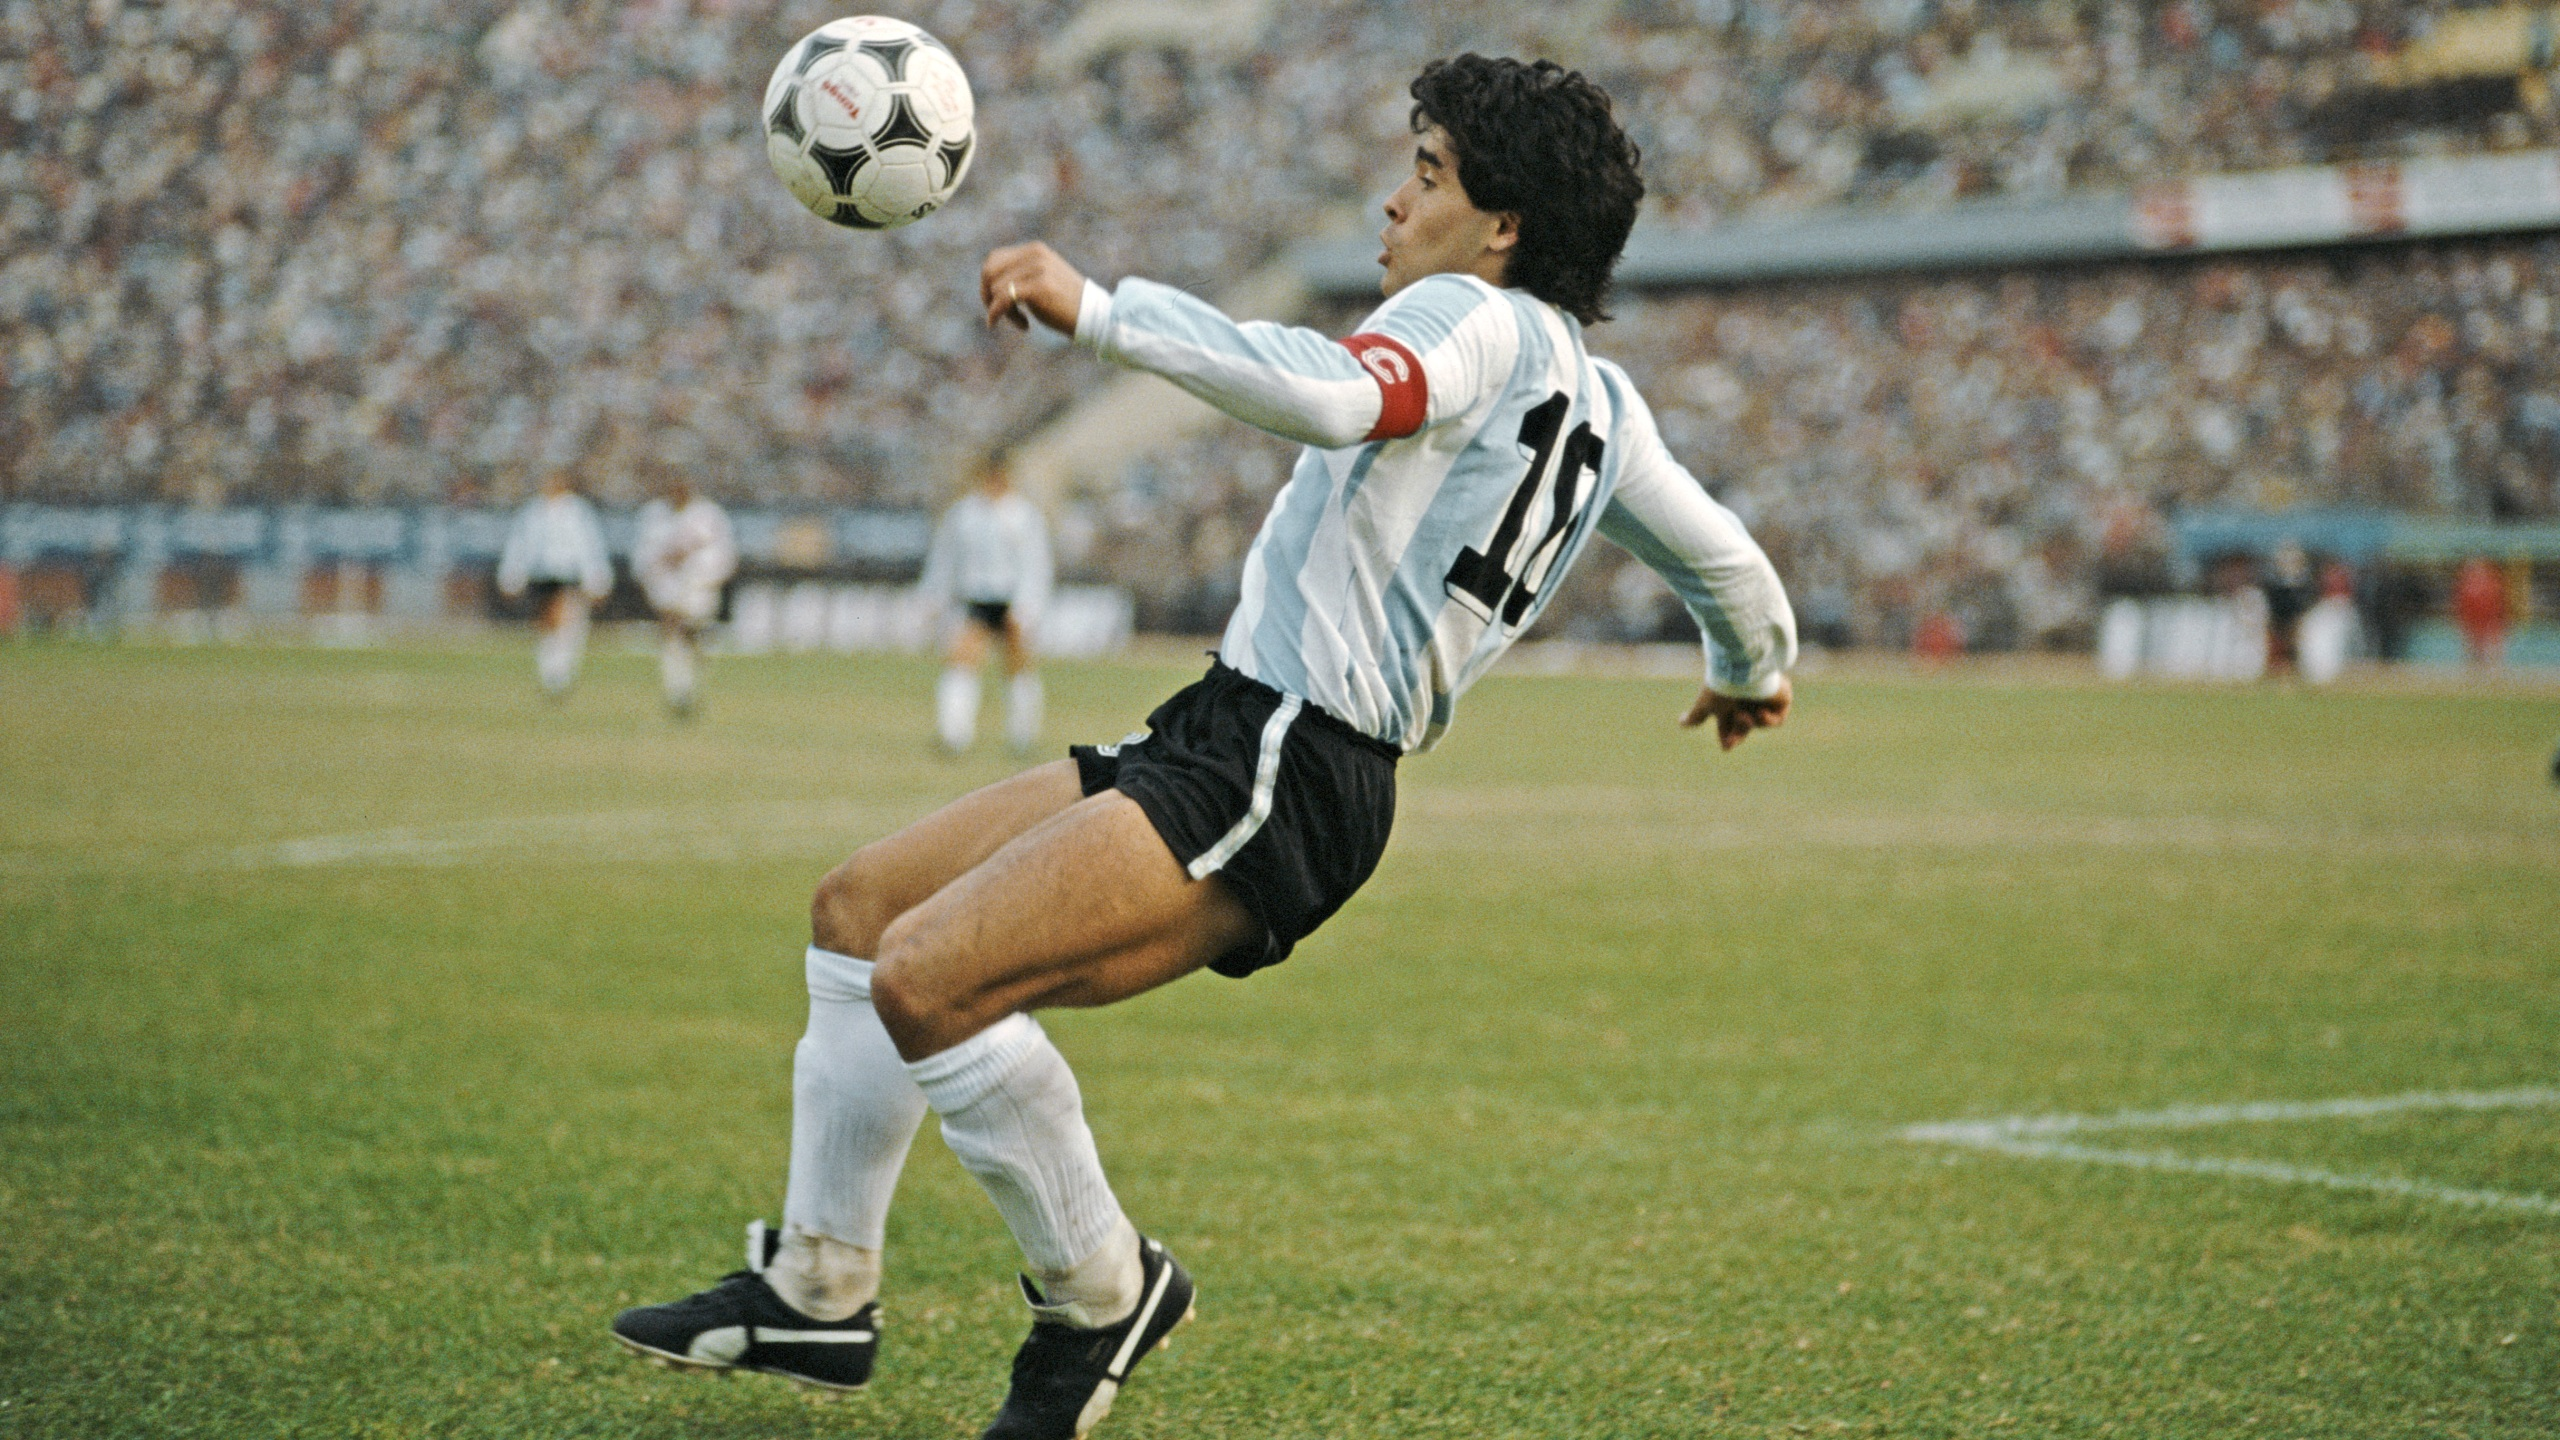 Diego Maradona, Argentina soccer legend who led country to 1986 World Cup, dies at 60 | KTLA